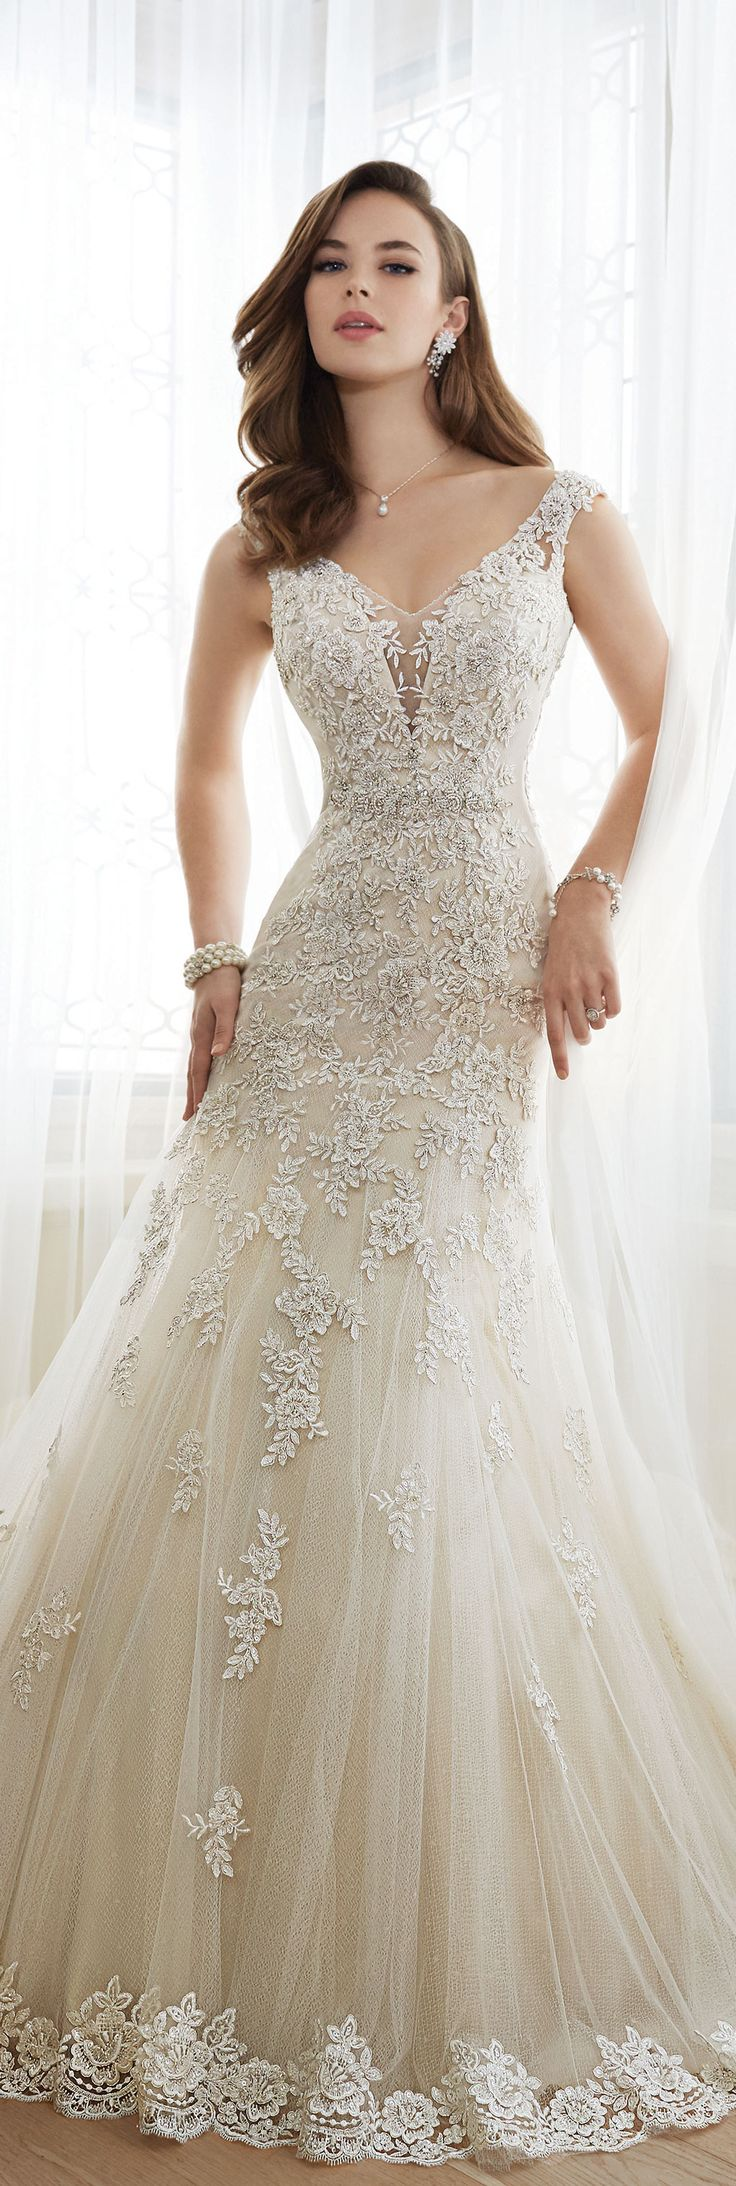 The Sophia Tolli Spring 2016 Wedding Dress Collection - Style No. Y11643 - Daria #laceweddingdresses